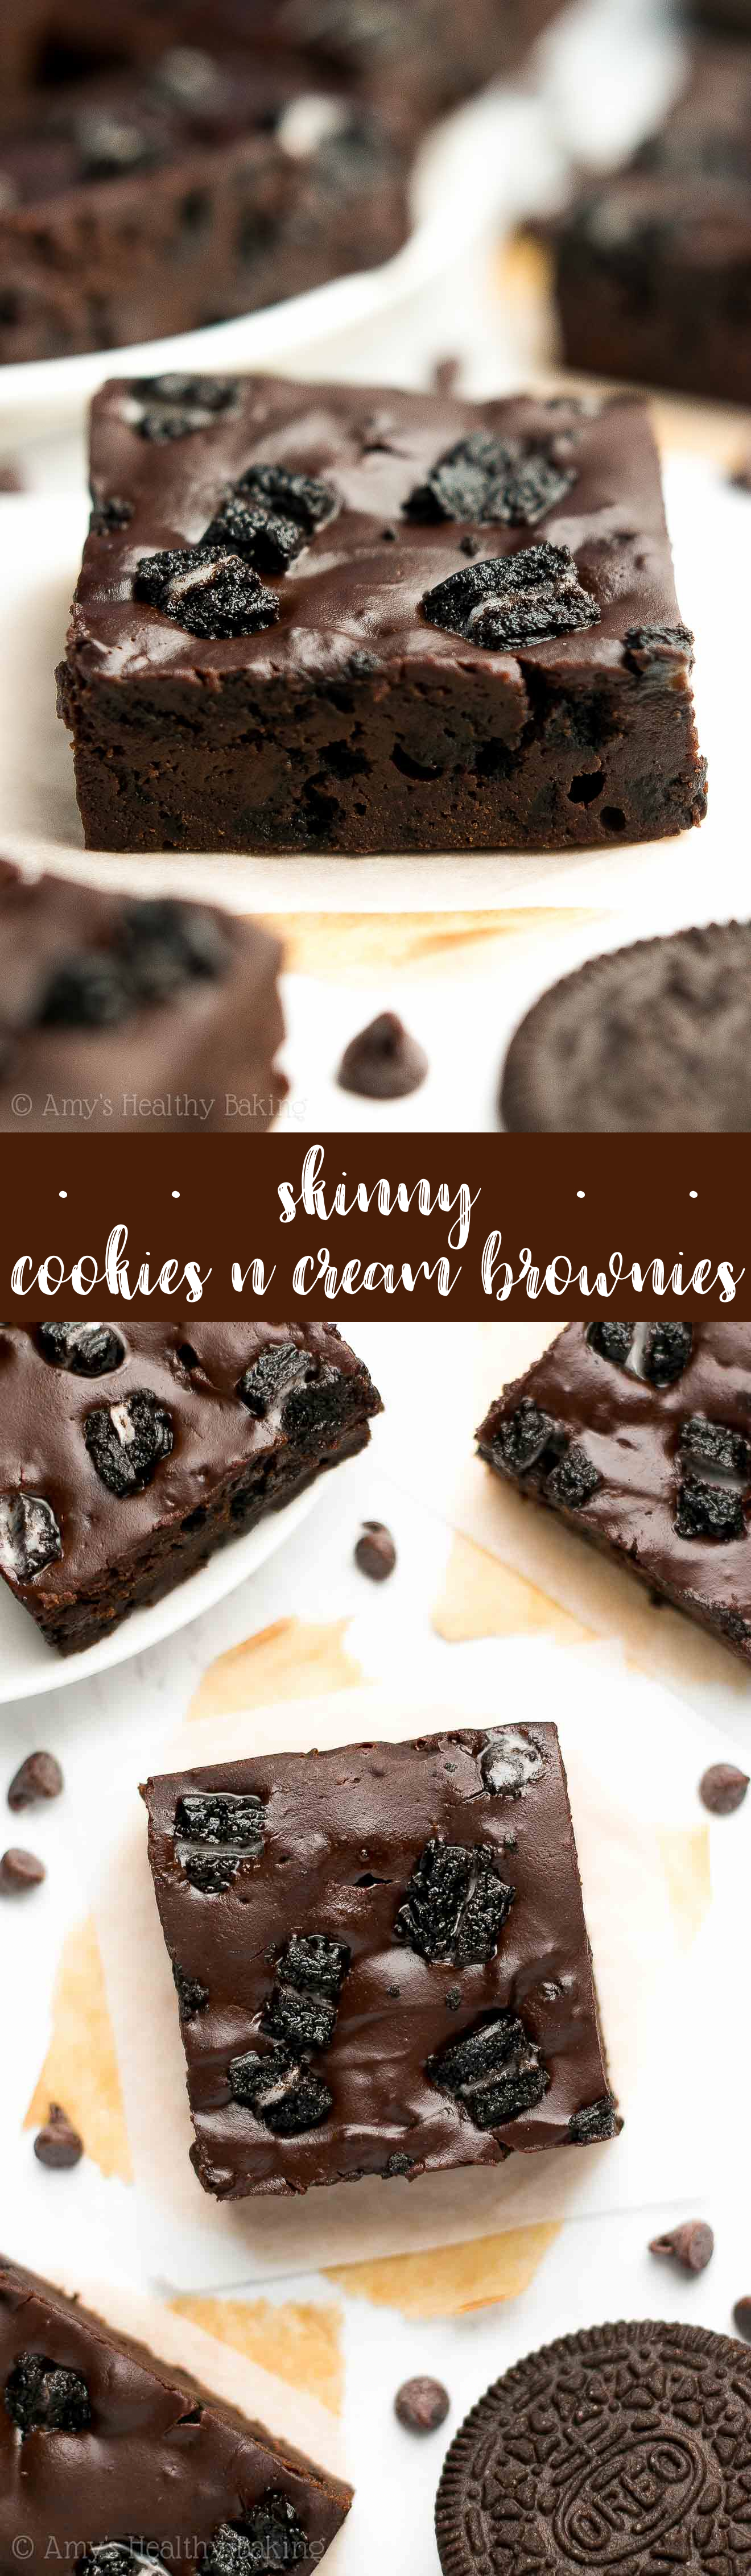 Healthier Cookies 'n Cream Brownies -- for serious chocoholics! Only 99 calories! Supremely rich, fudgy & full of Oreos! The BEST brownies you'll ever have!